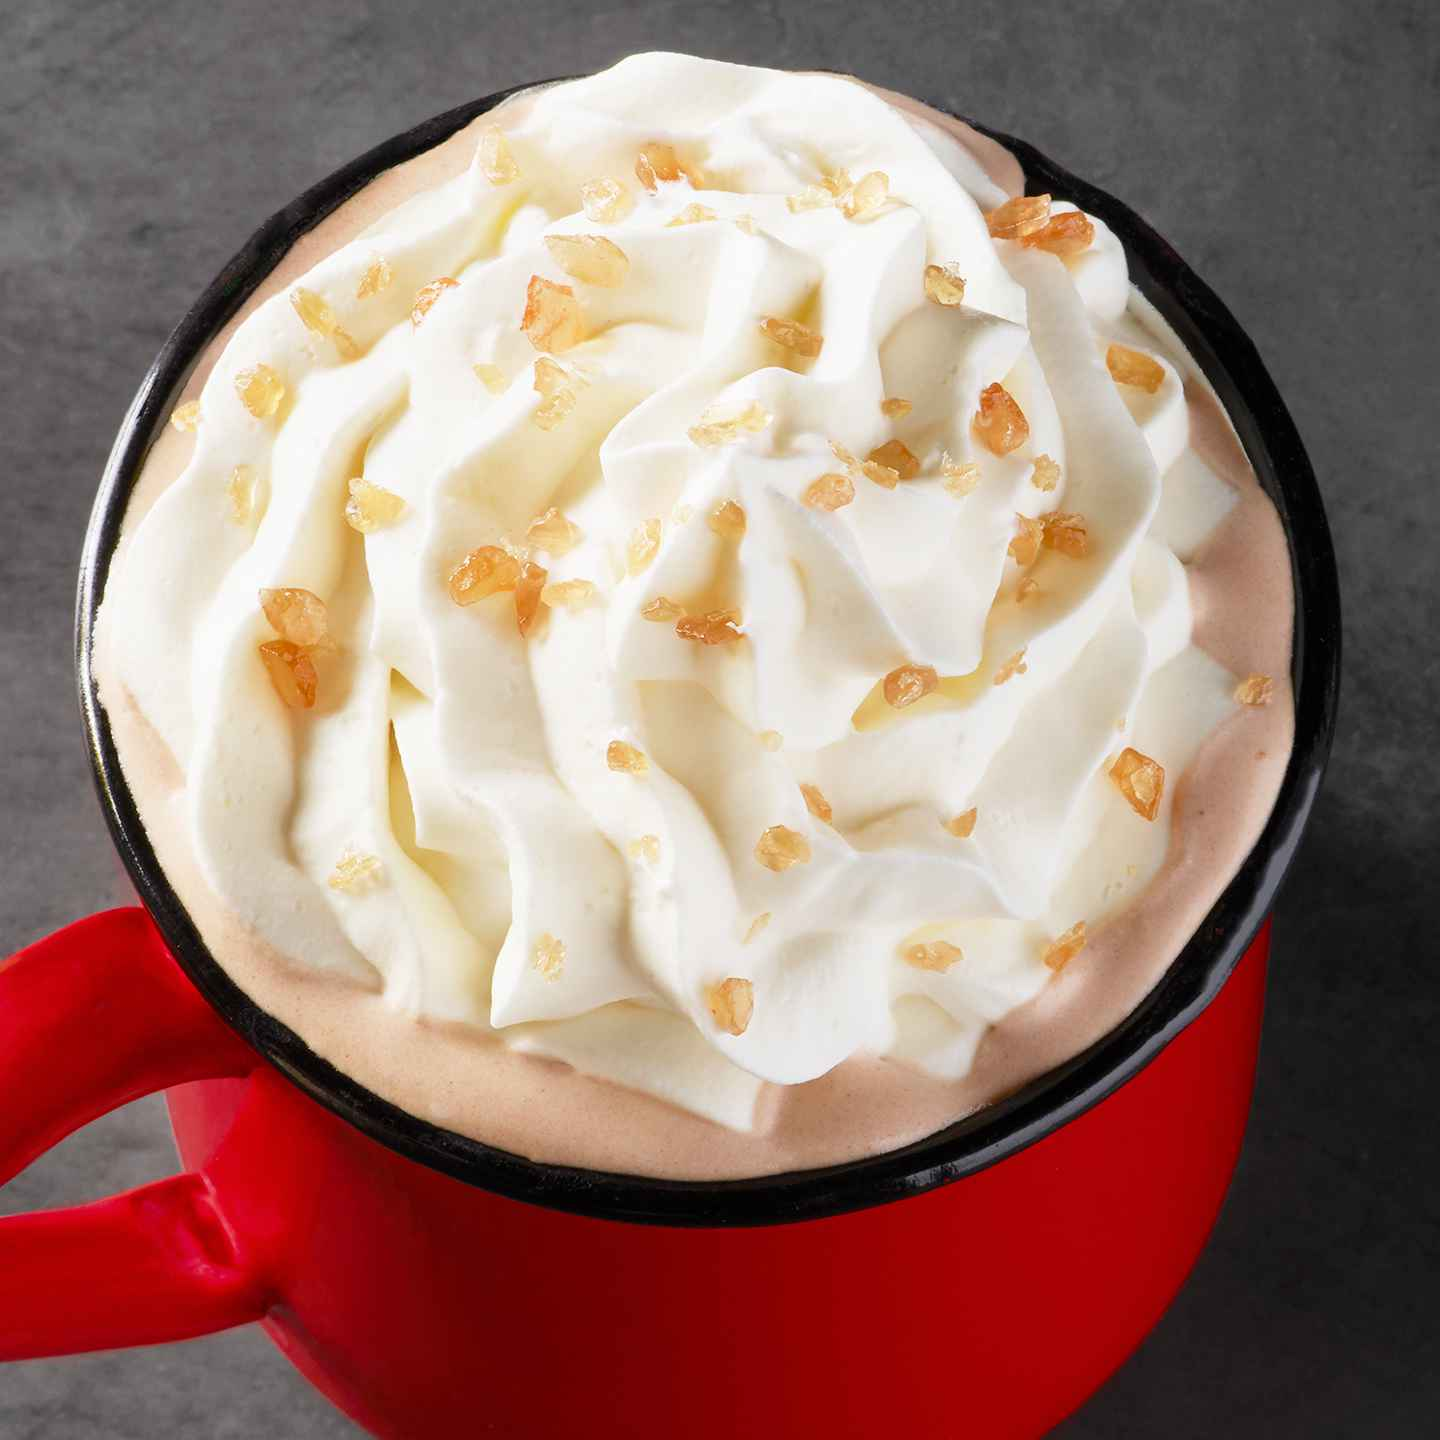 Toffee Almondmilk Hot Chocolate at Starbucks